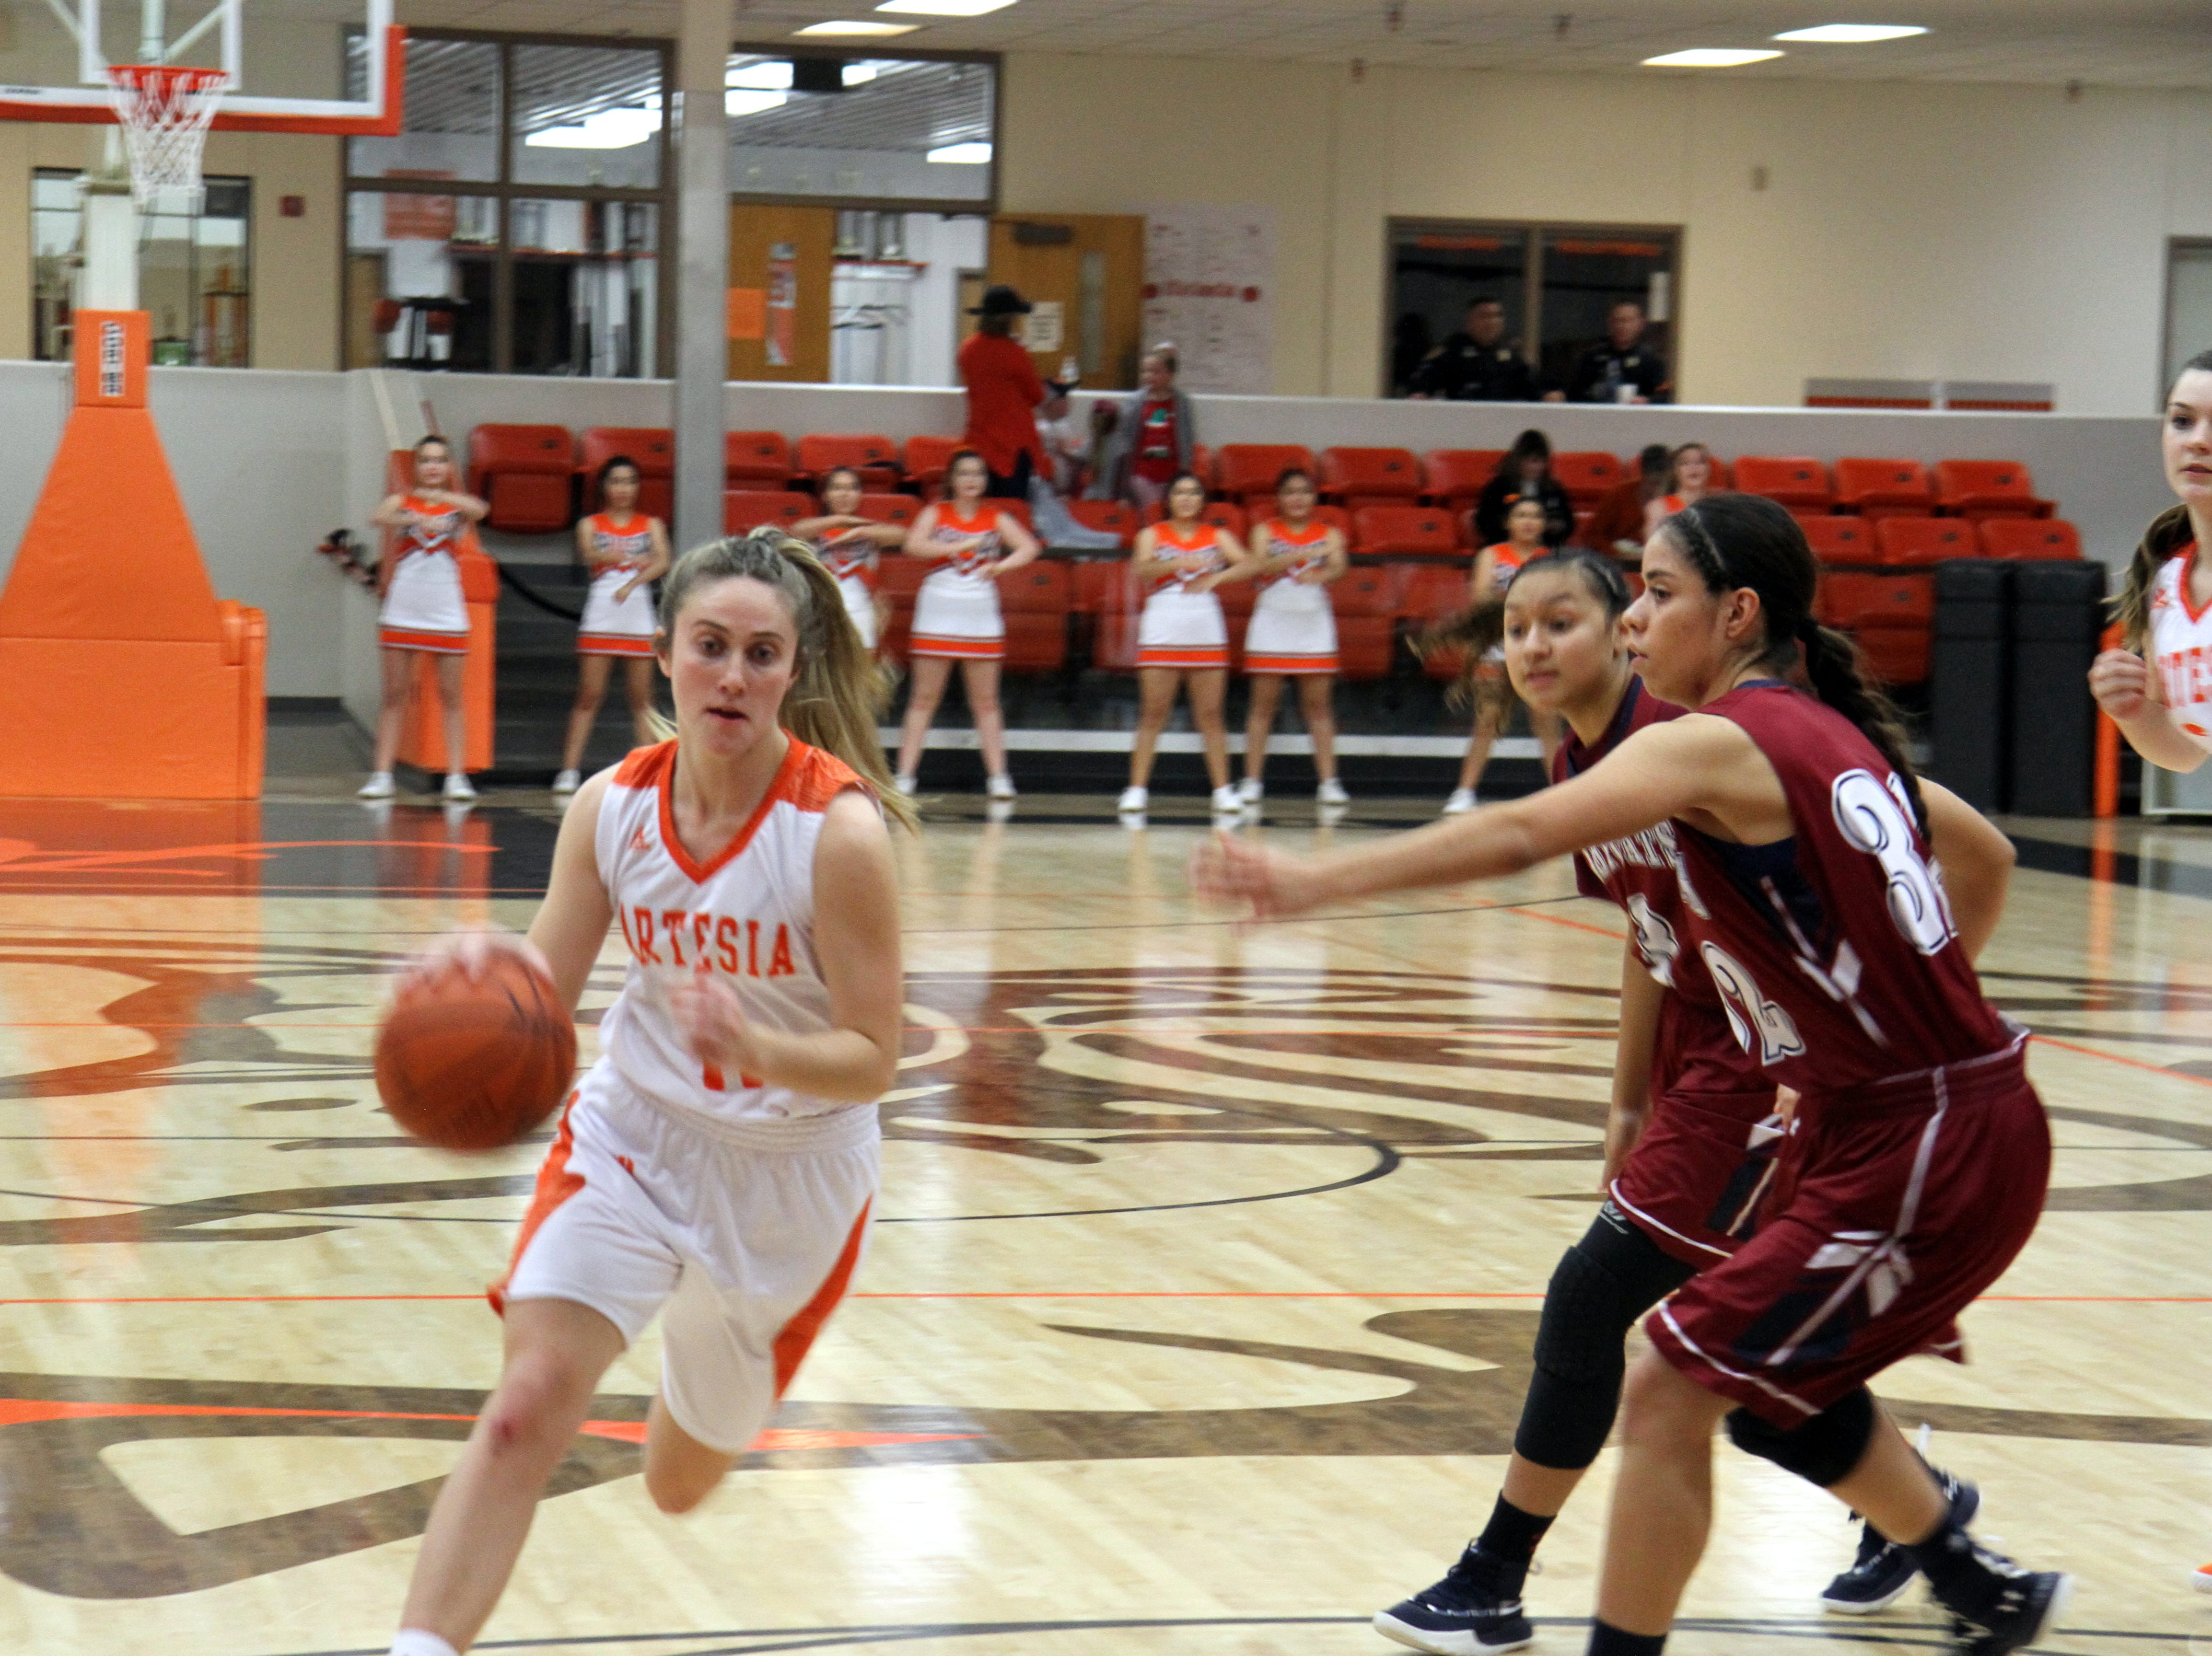 Makinli Taylor drives against Deming during Friday's second round of the Artesia Tournament of Champions.